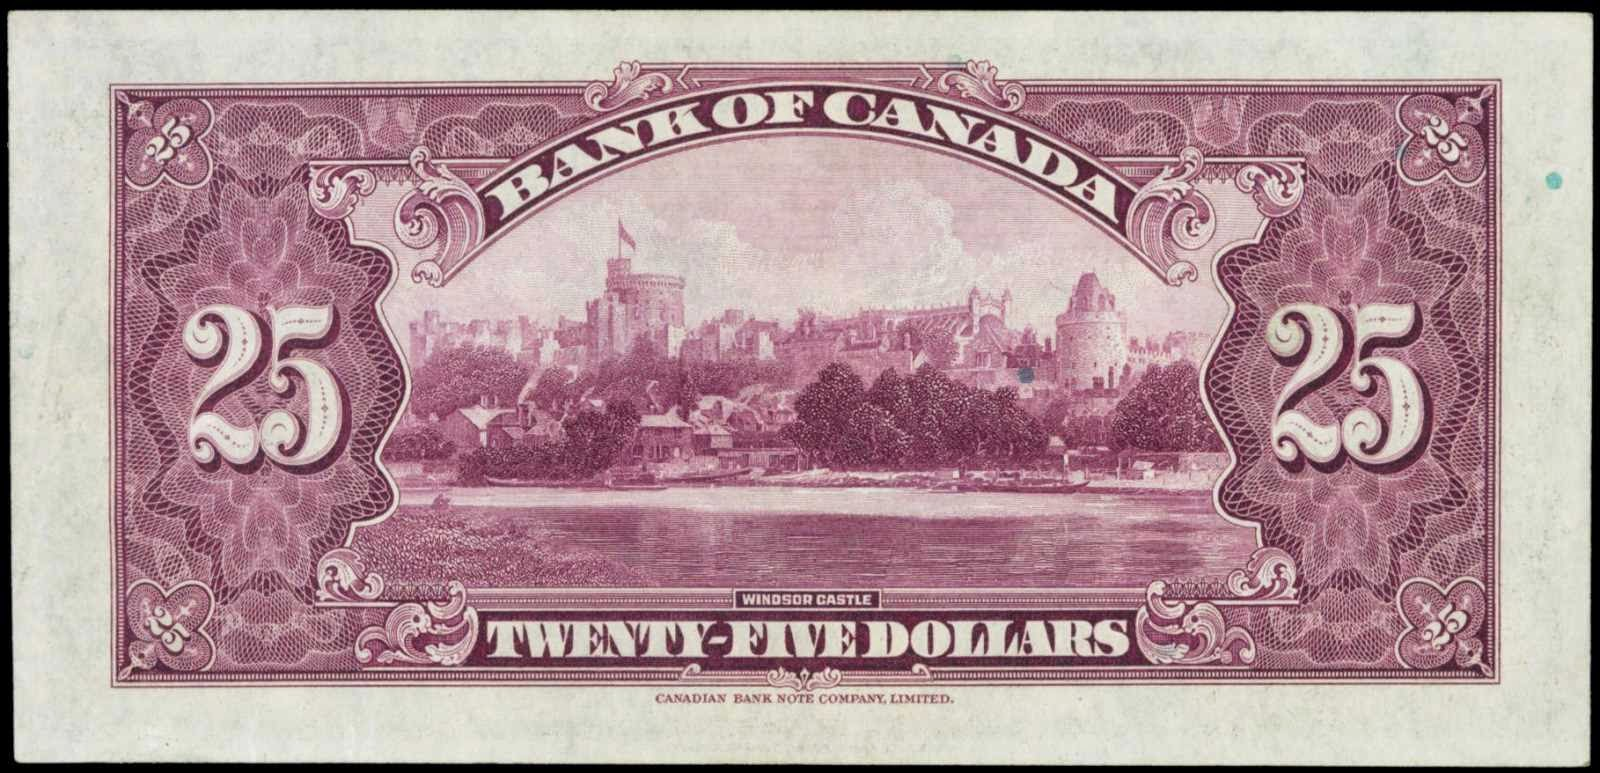 Bank of Canada 1935 Twenty-Five Dollar Bill